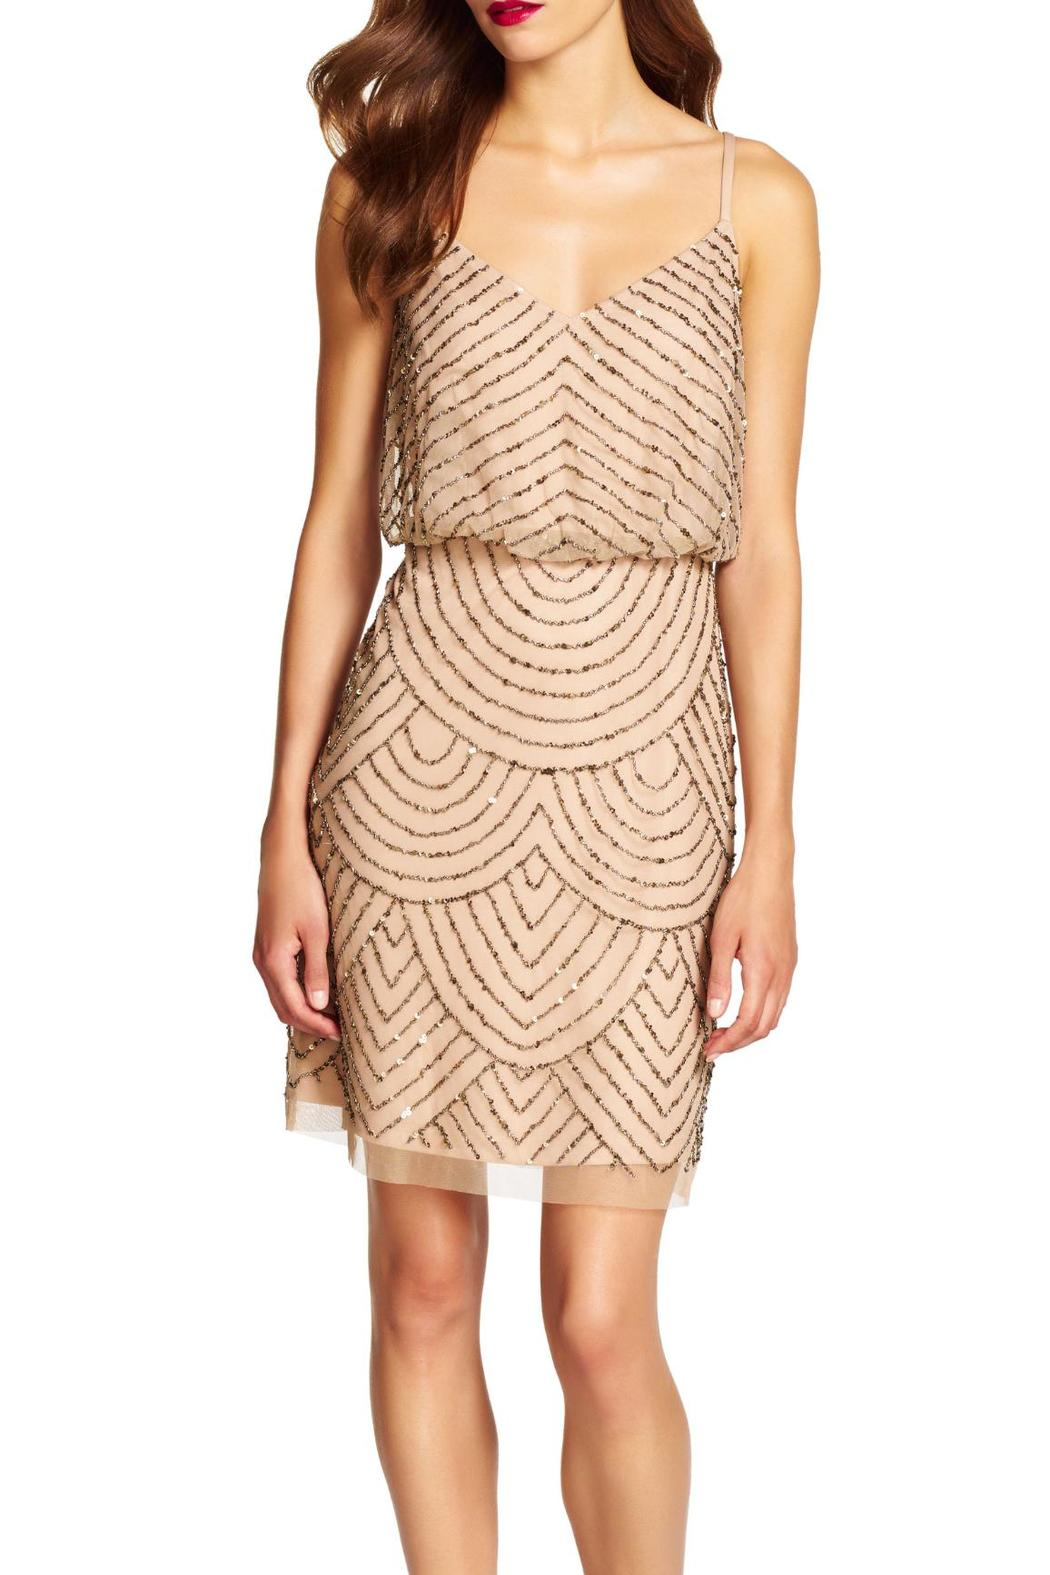 Adrianna papell beaded blouson dress from georgia by high for Adrianna papell wedding guest dresses